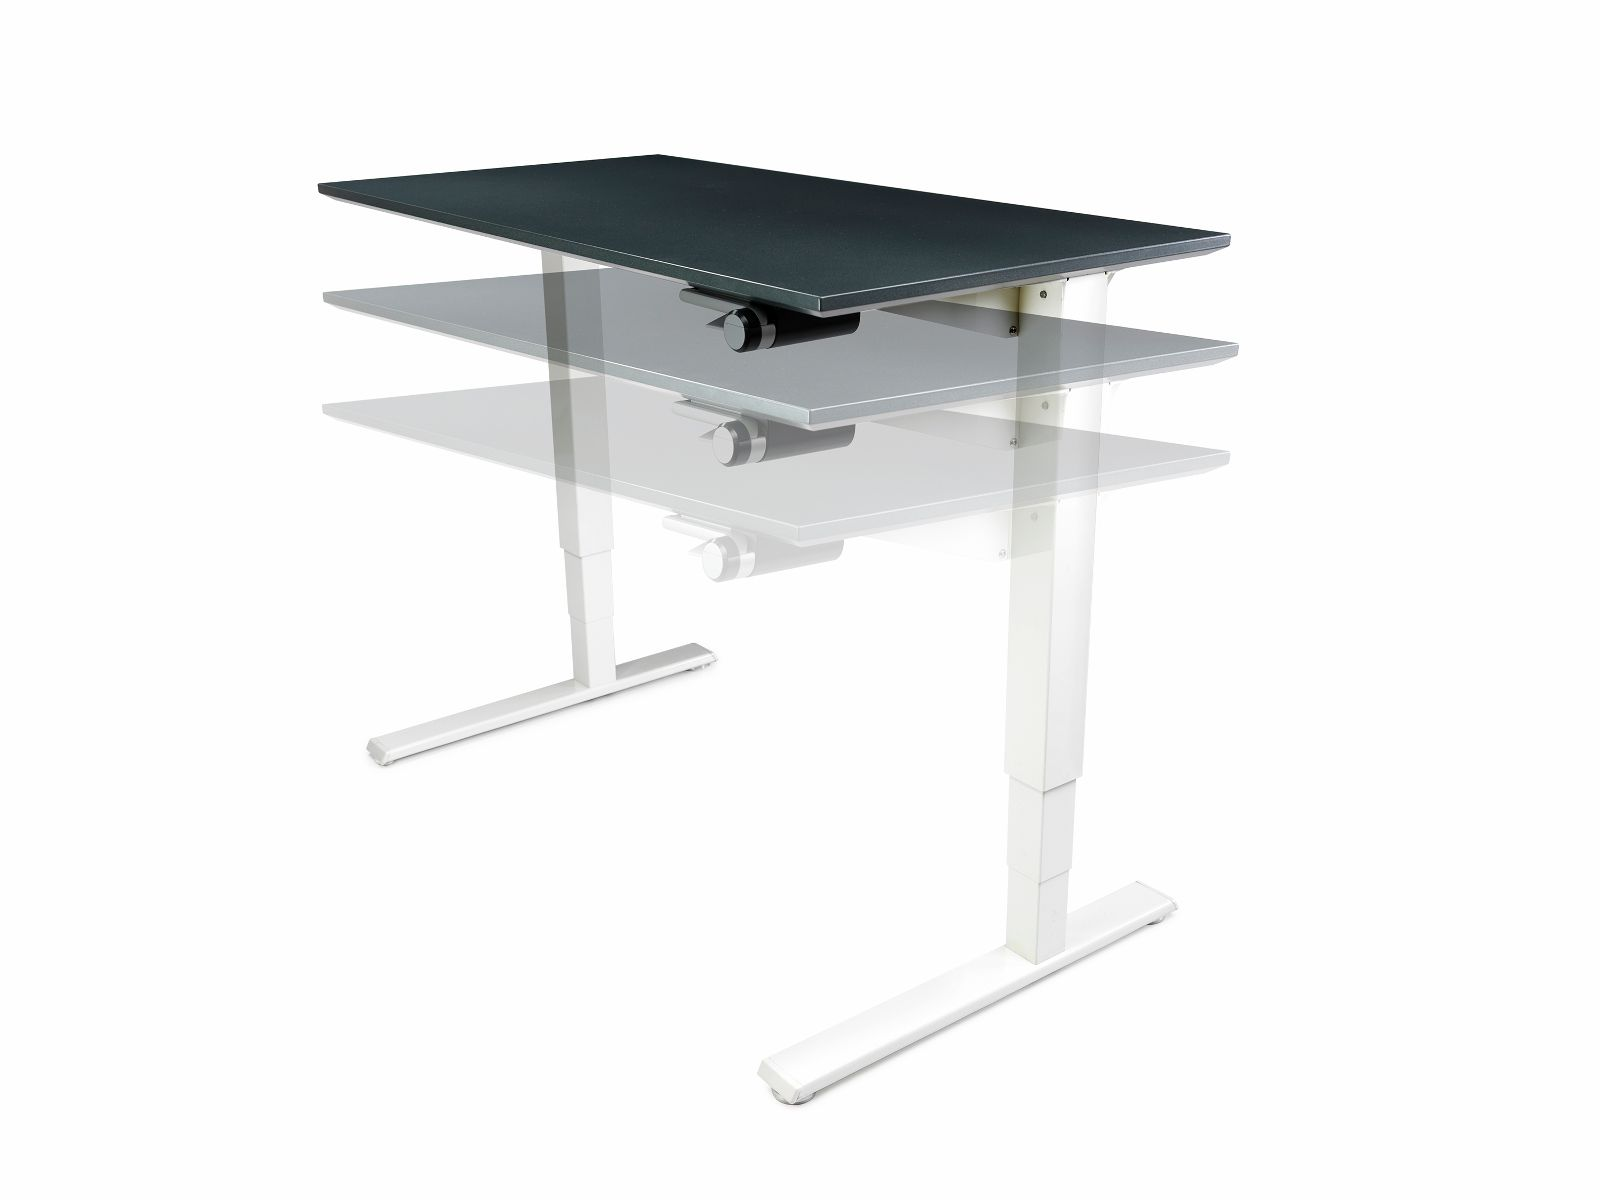 adjustable desks series steelcase height table legs electric desk products office workstation